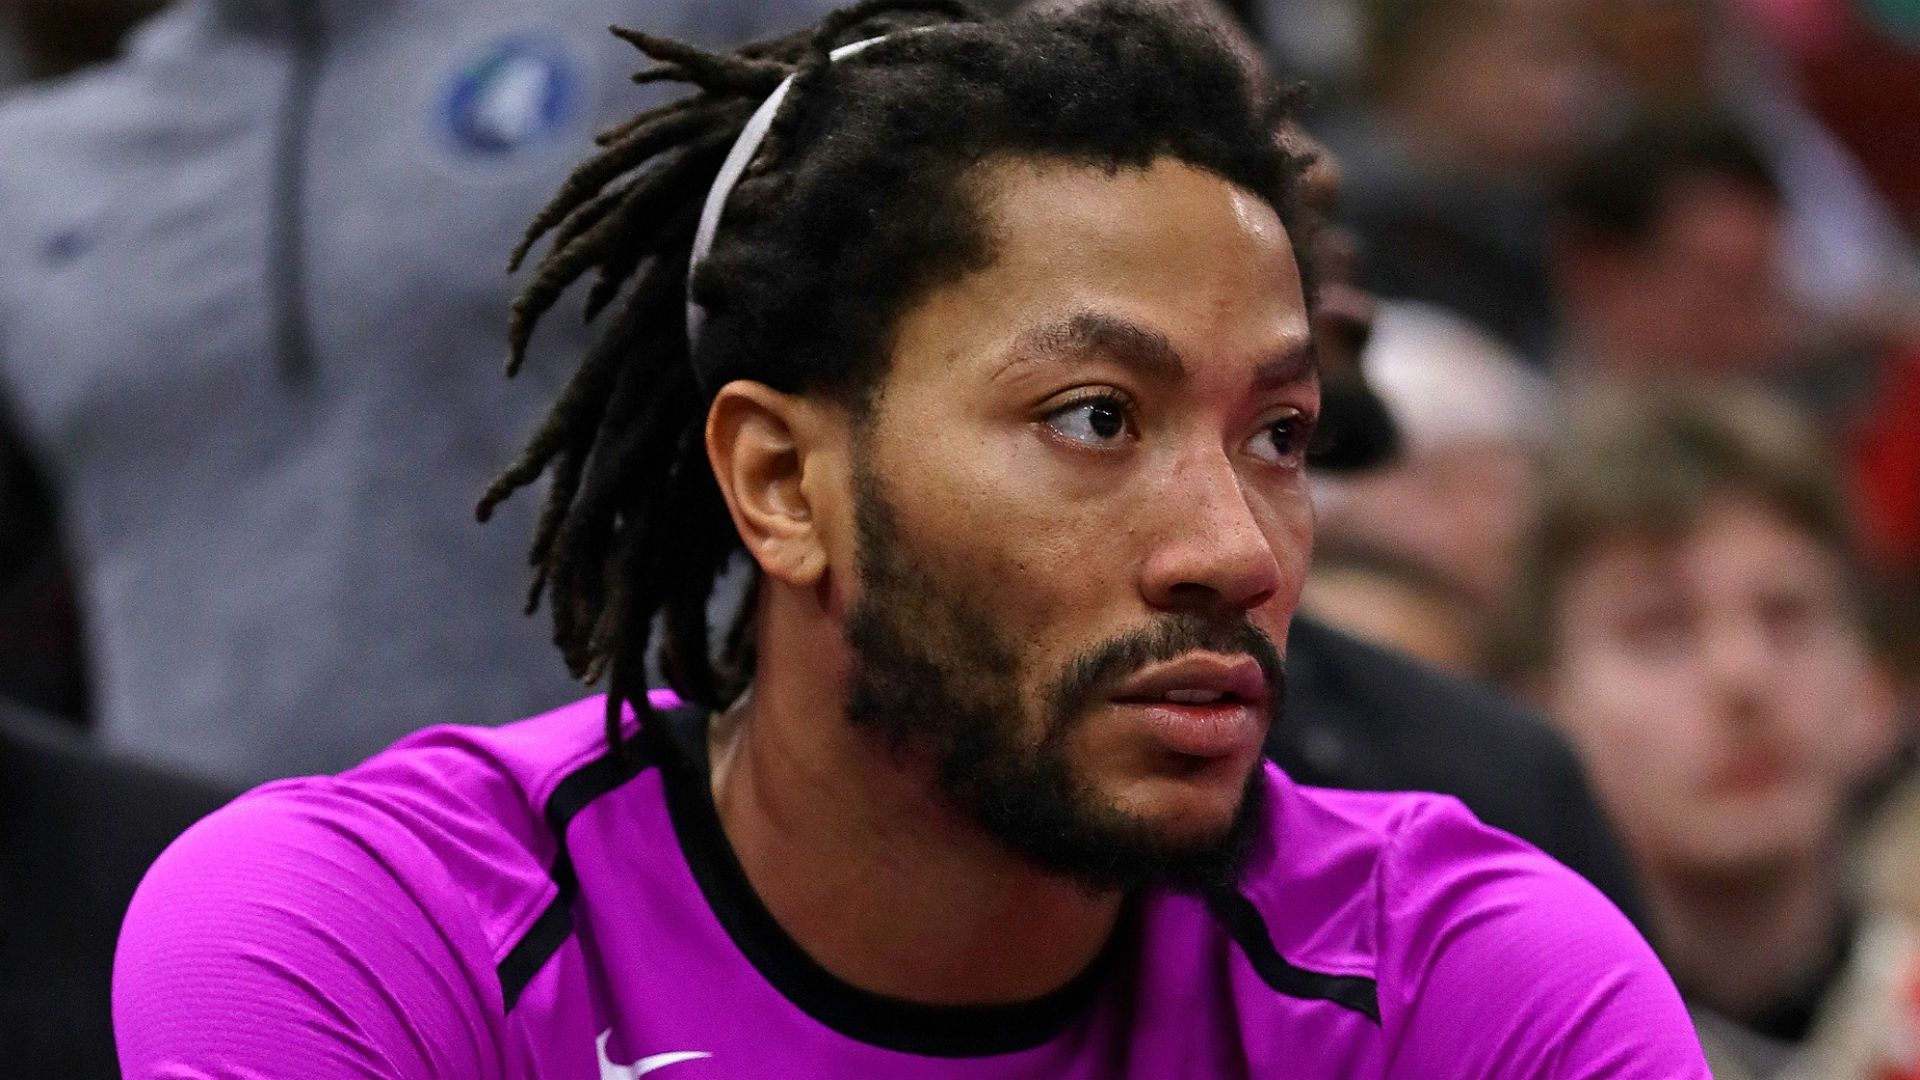 New video shows Derrick Rose fighting back tears after Bulls